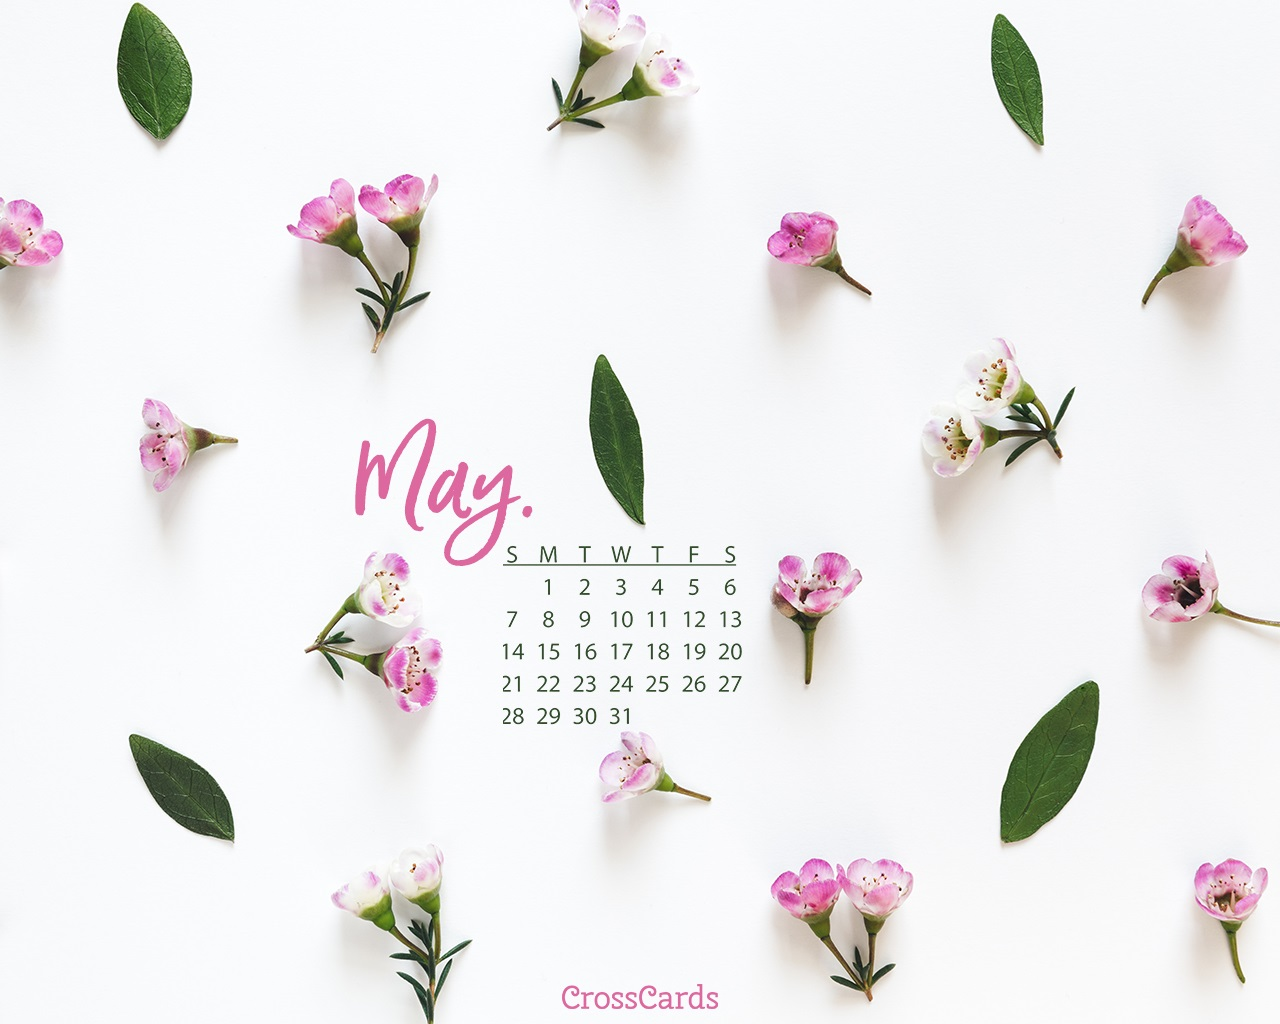 Calendar Backgrounds & Wallpaper Free Inspiring Desktop and